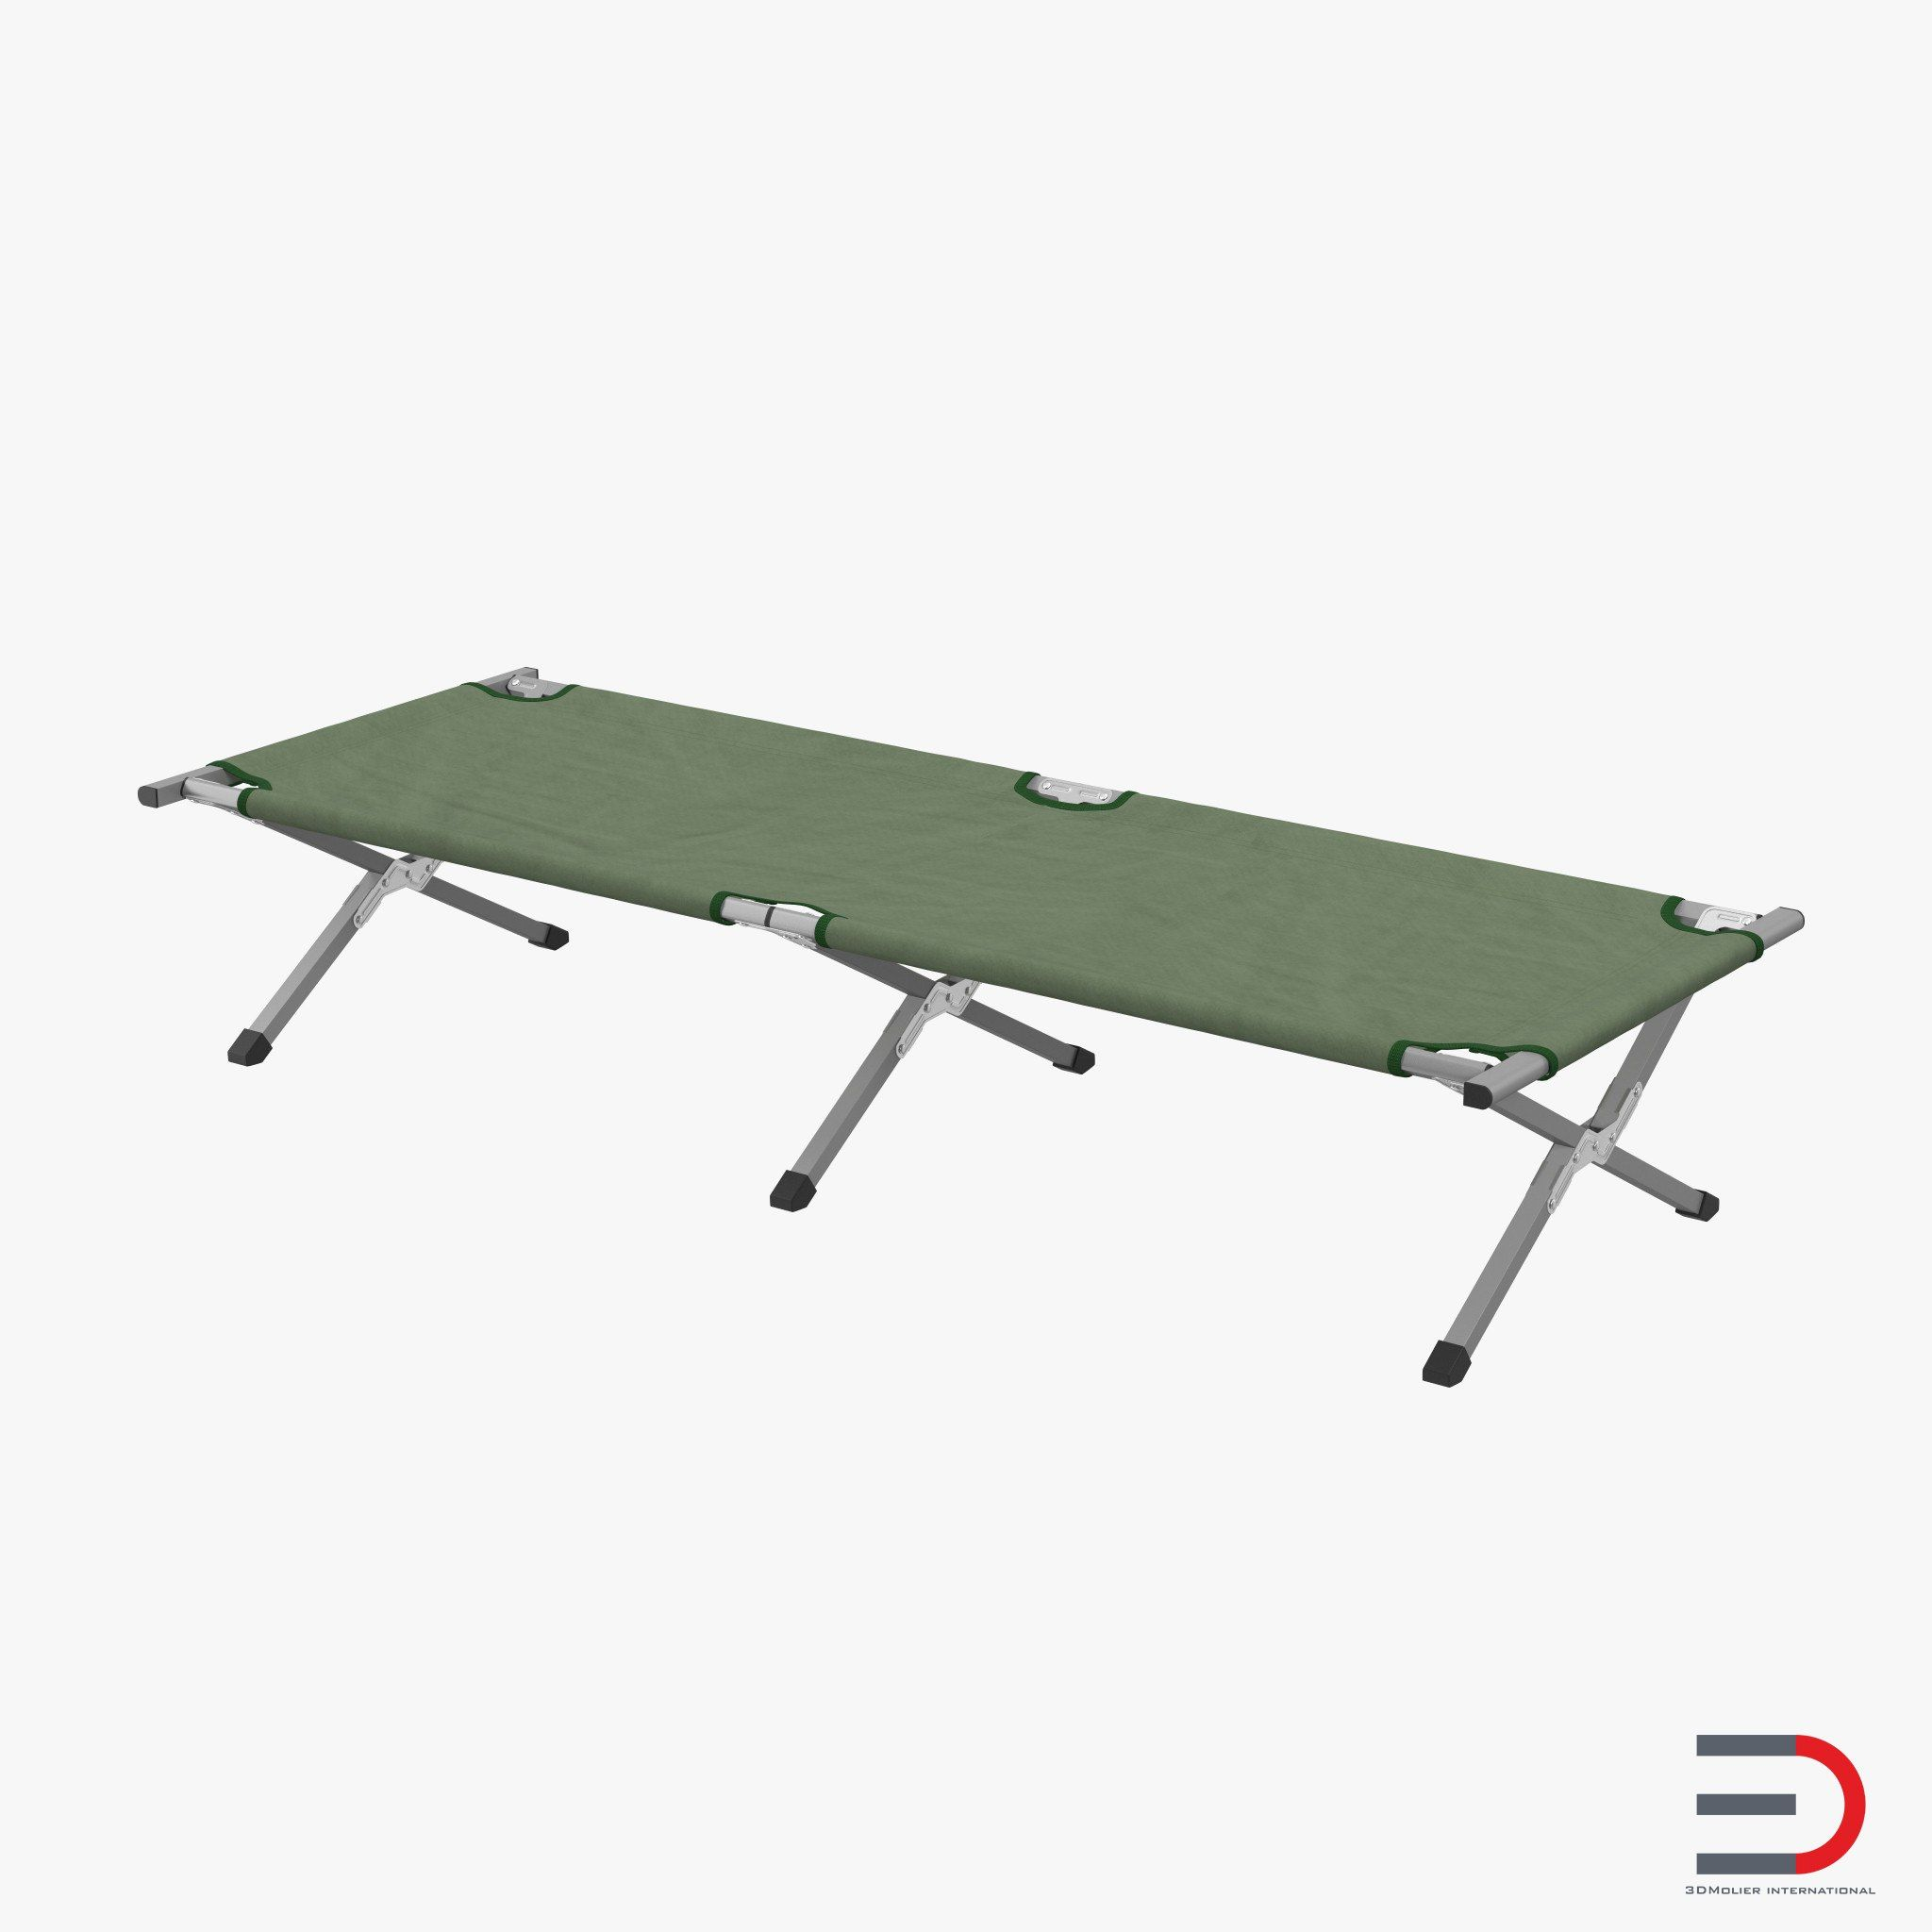 Camping Stretchers and Bed 3d model | 3d models of Medical Equipment ...